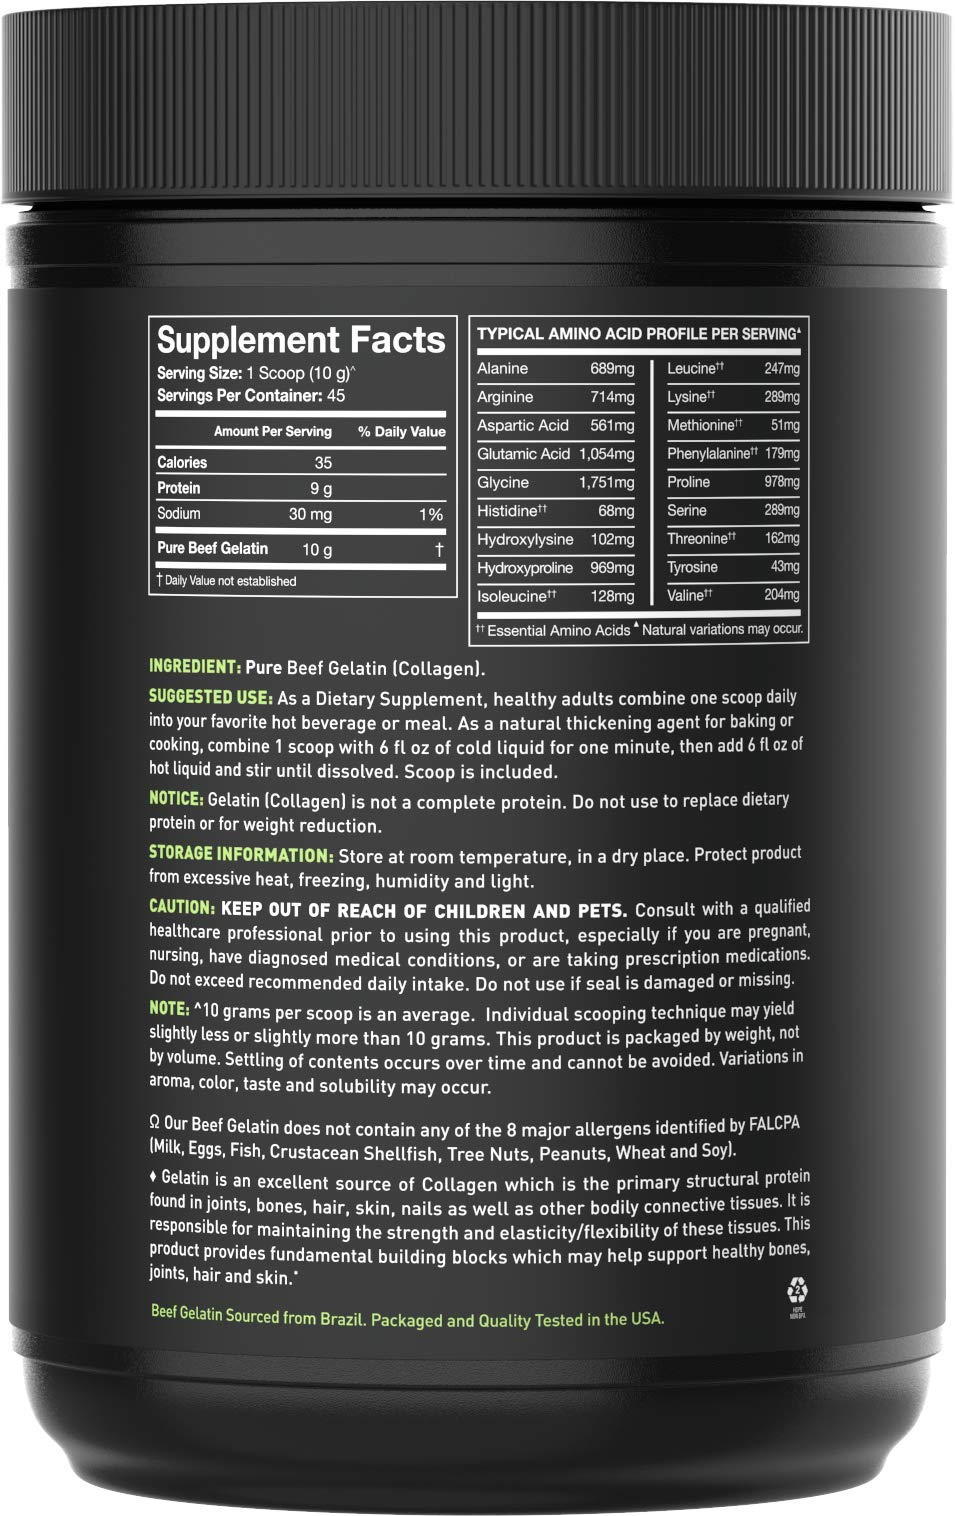 Gelatin Collagen Cooking Powder ~ Sourced from Pasture Raised,Grass-Fed Cows ~ Great for Cooking and Baking~ Certified Keto Friendly and Non-GMO (16oz) by Sports Research (Image #2)